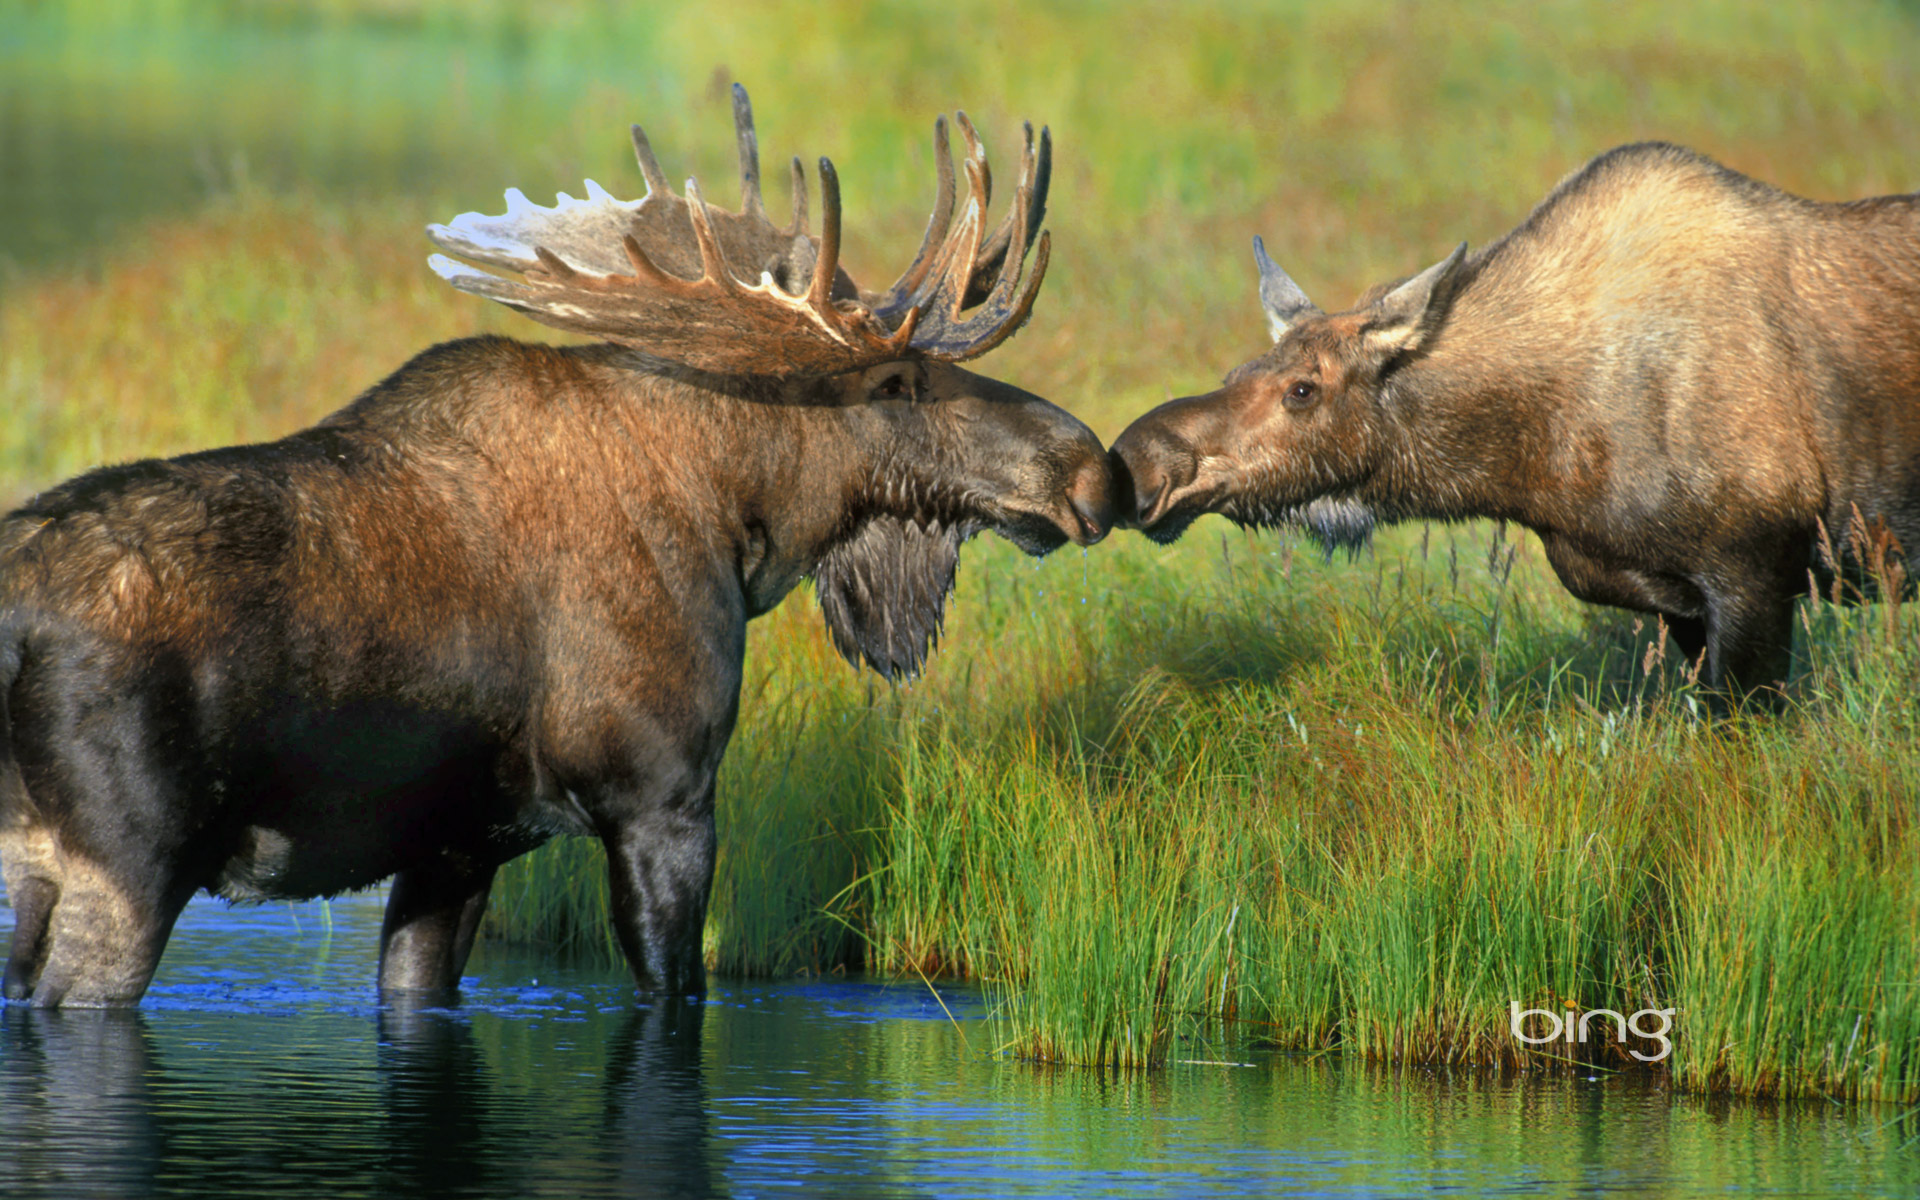 Pair of moose at Wonder Lake in Denali National Park, Alaska